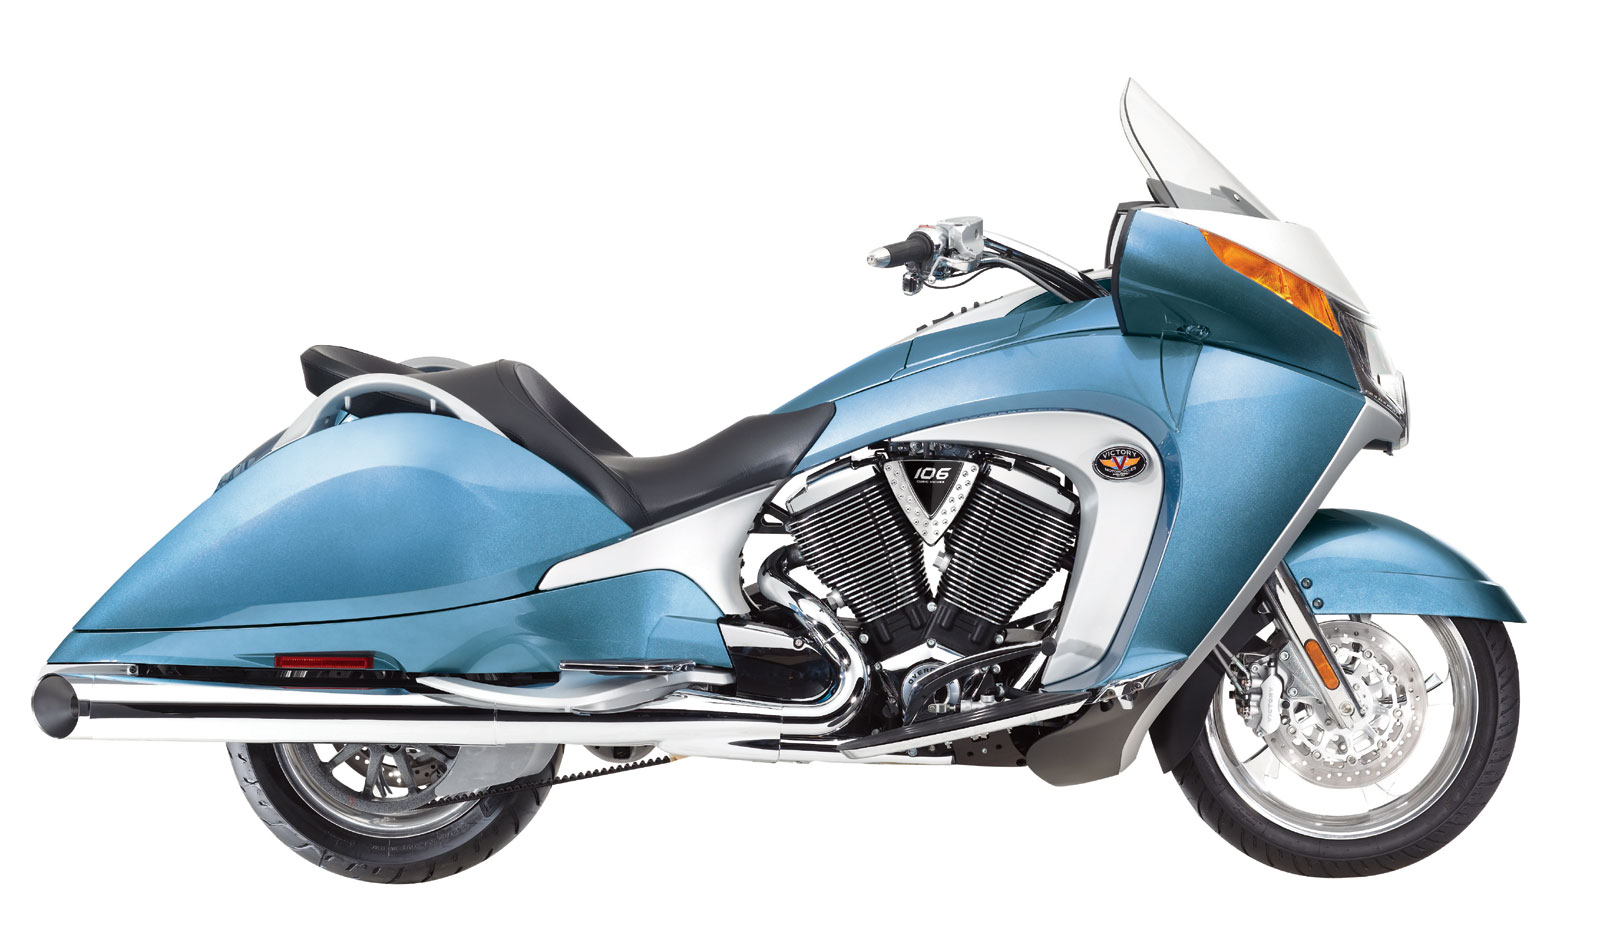 2009 Victory Vision Street Wallpaper